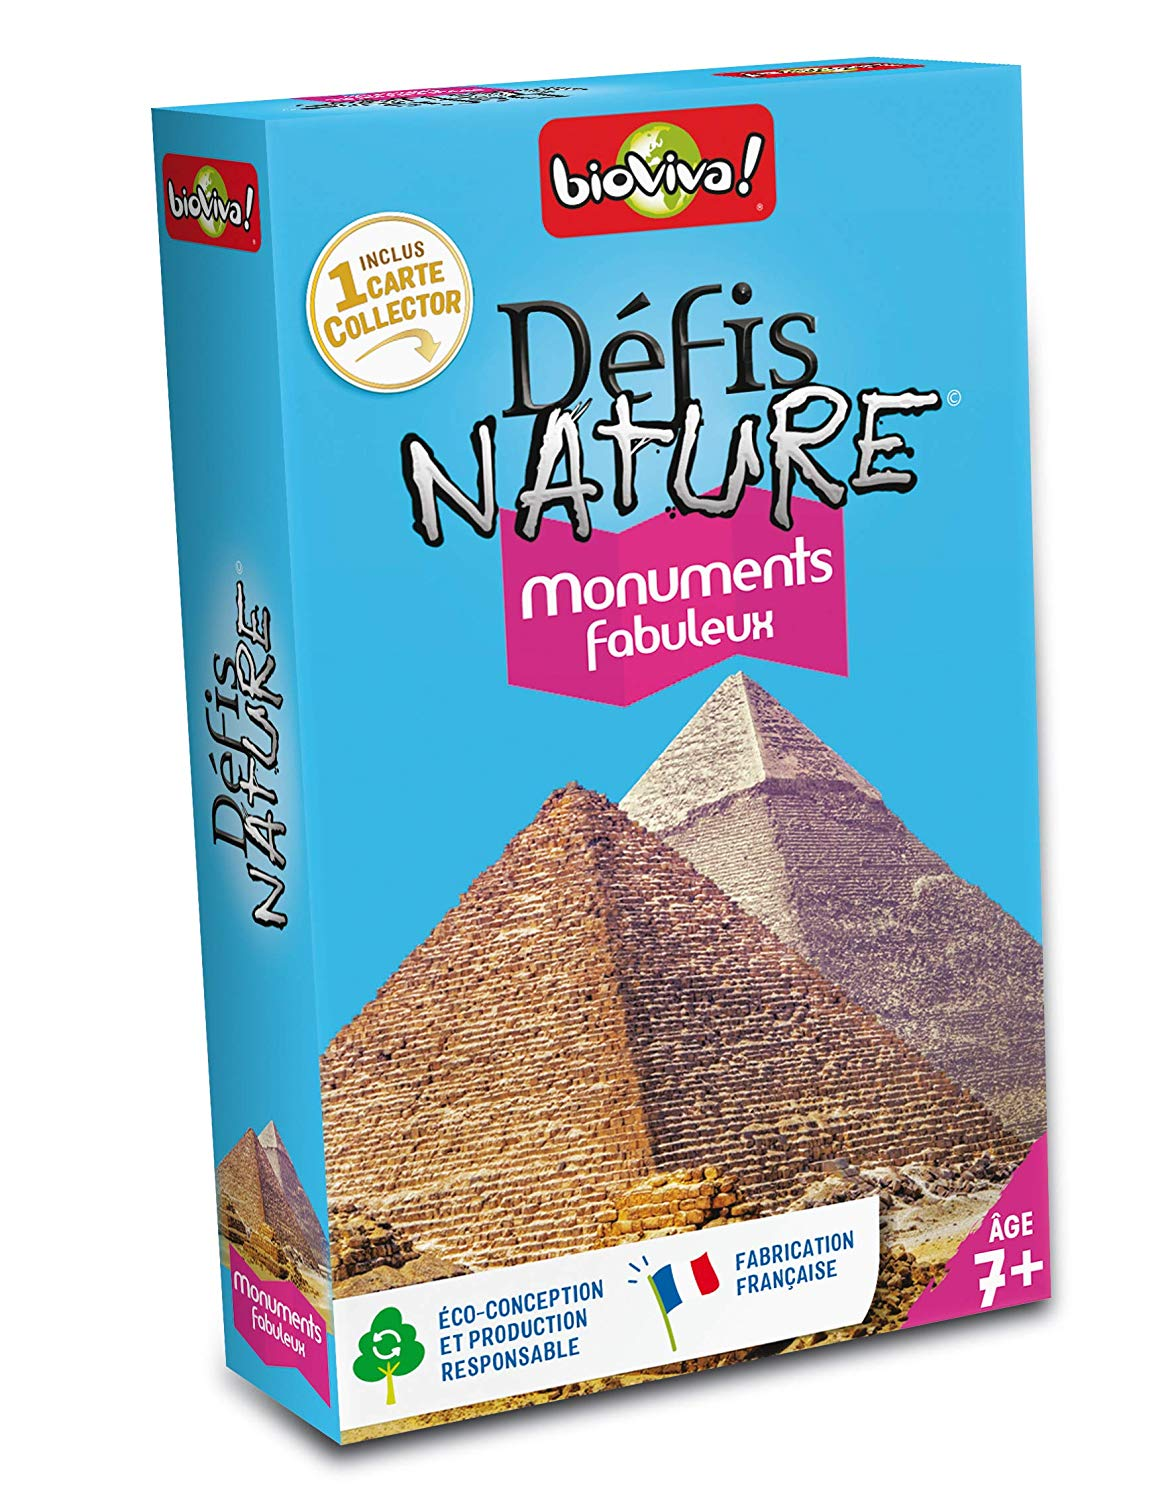 Bioviva 200561 fabuleux Challenges Nature-Fabulous Monuments Card Game, Multi-Color